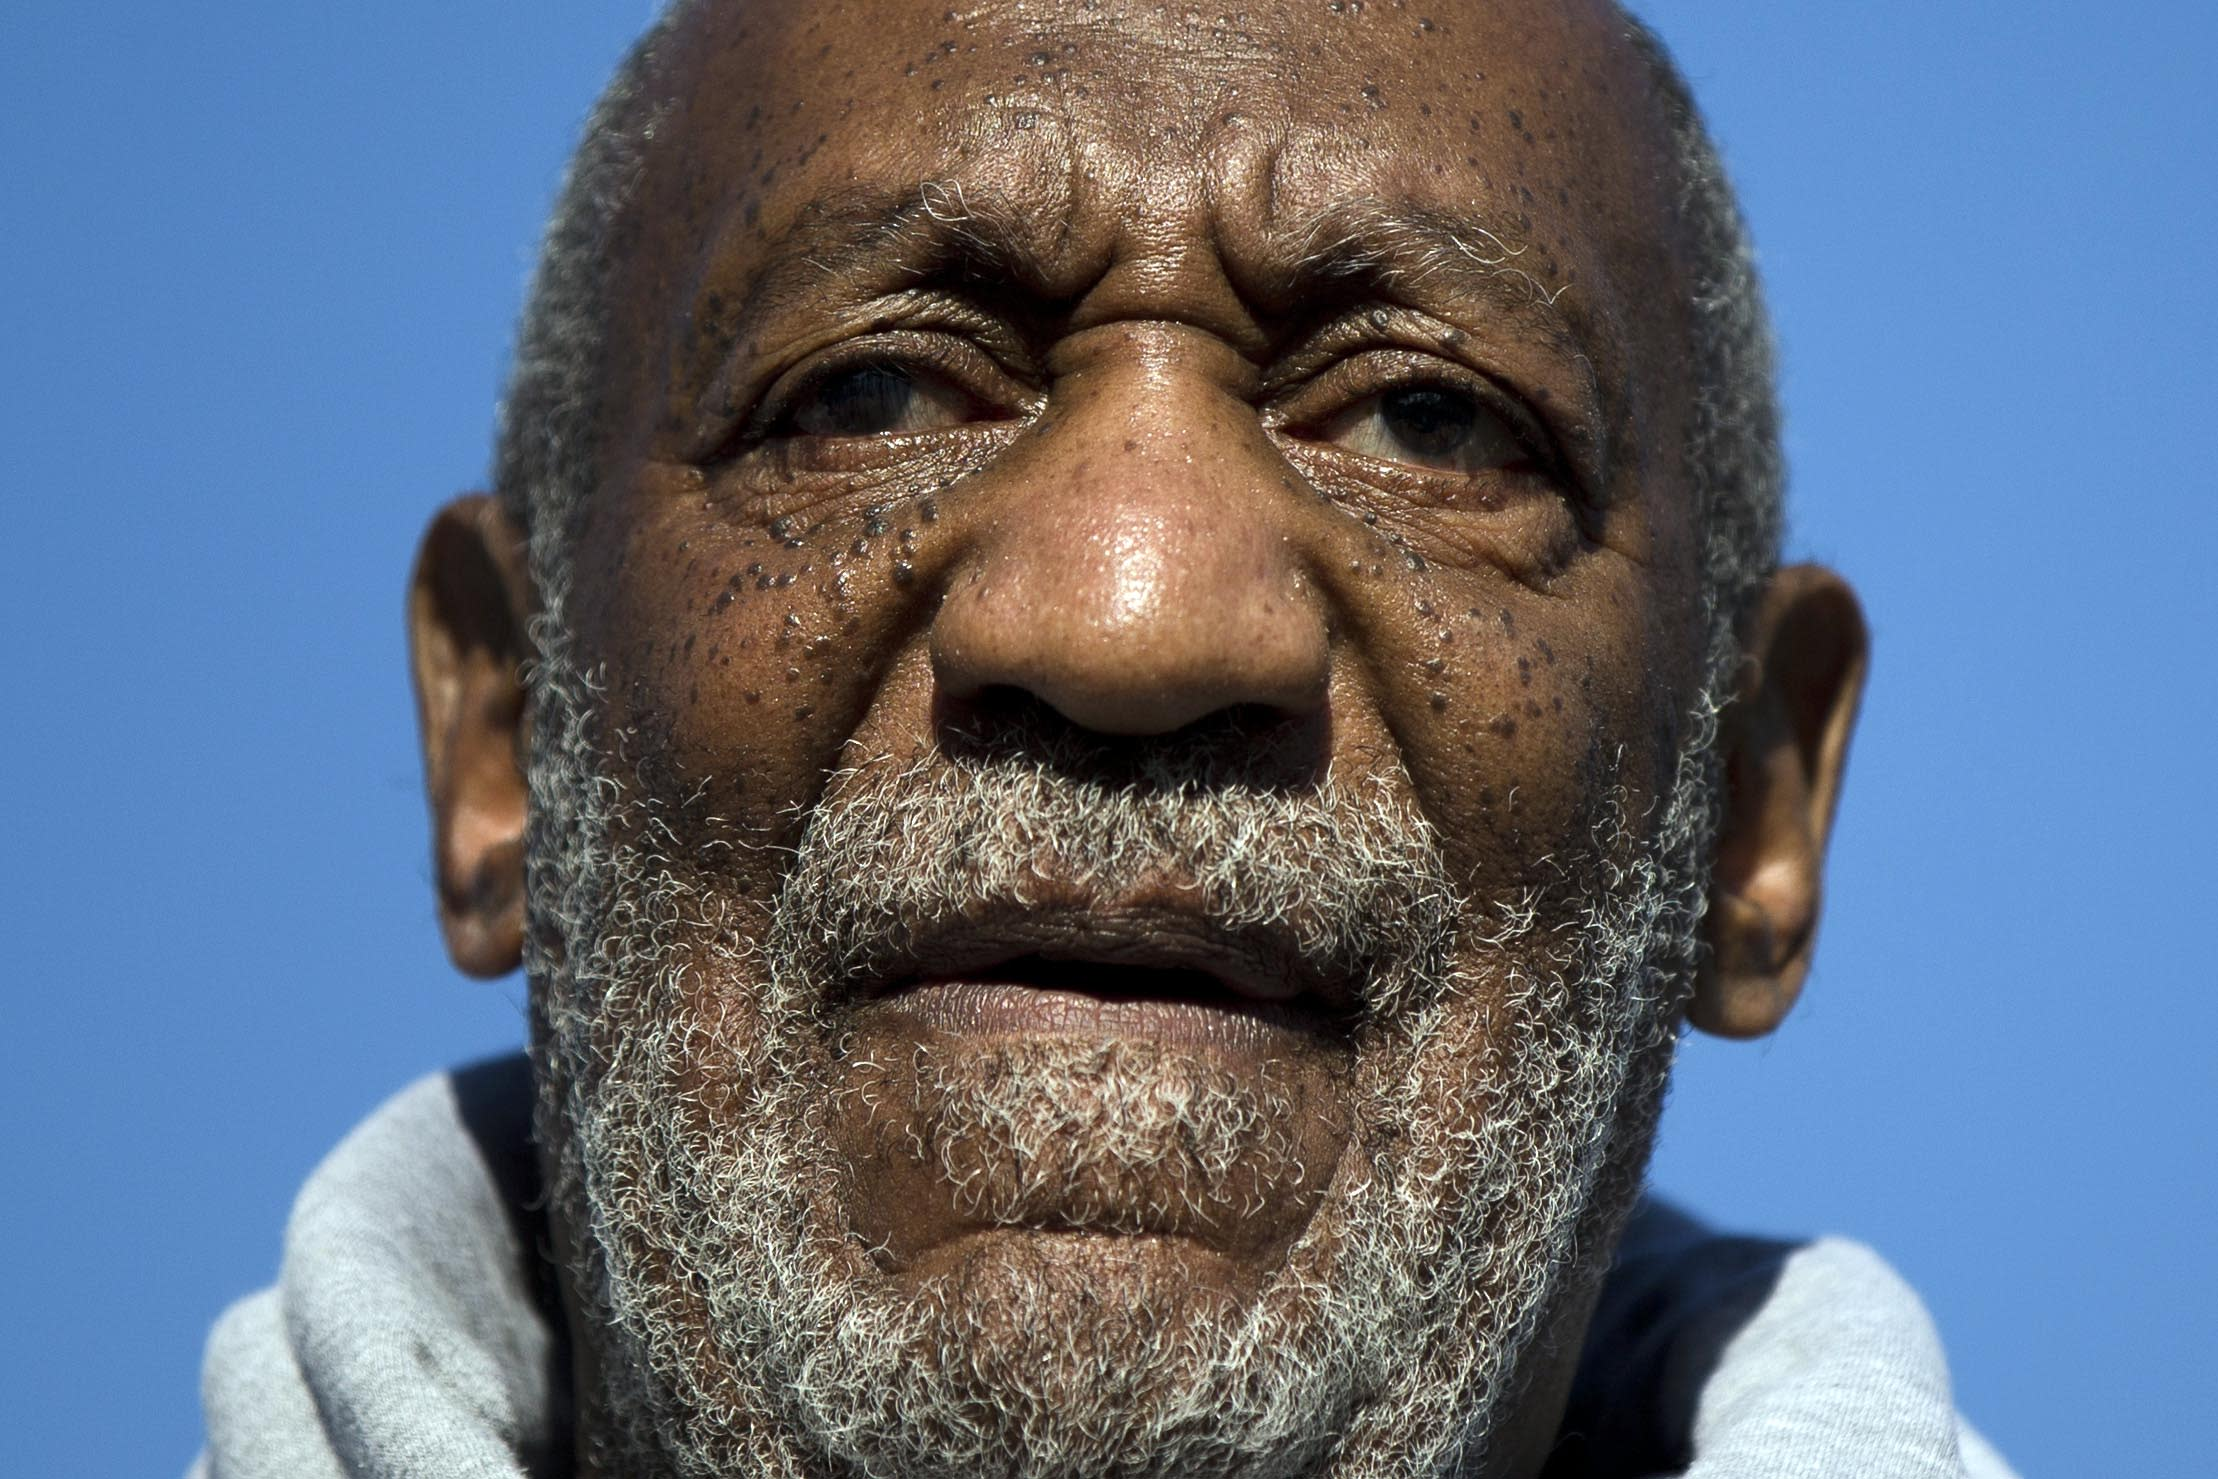 APNewsBreak: Cosby said he got drugs to give women for sex